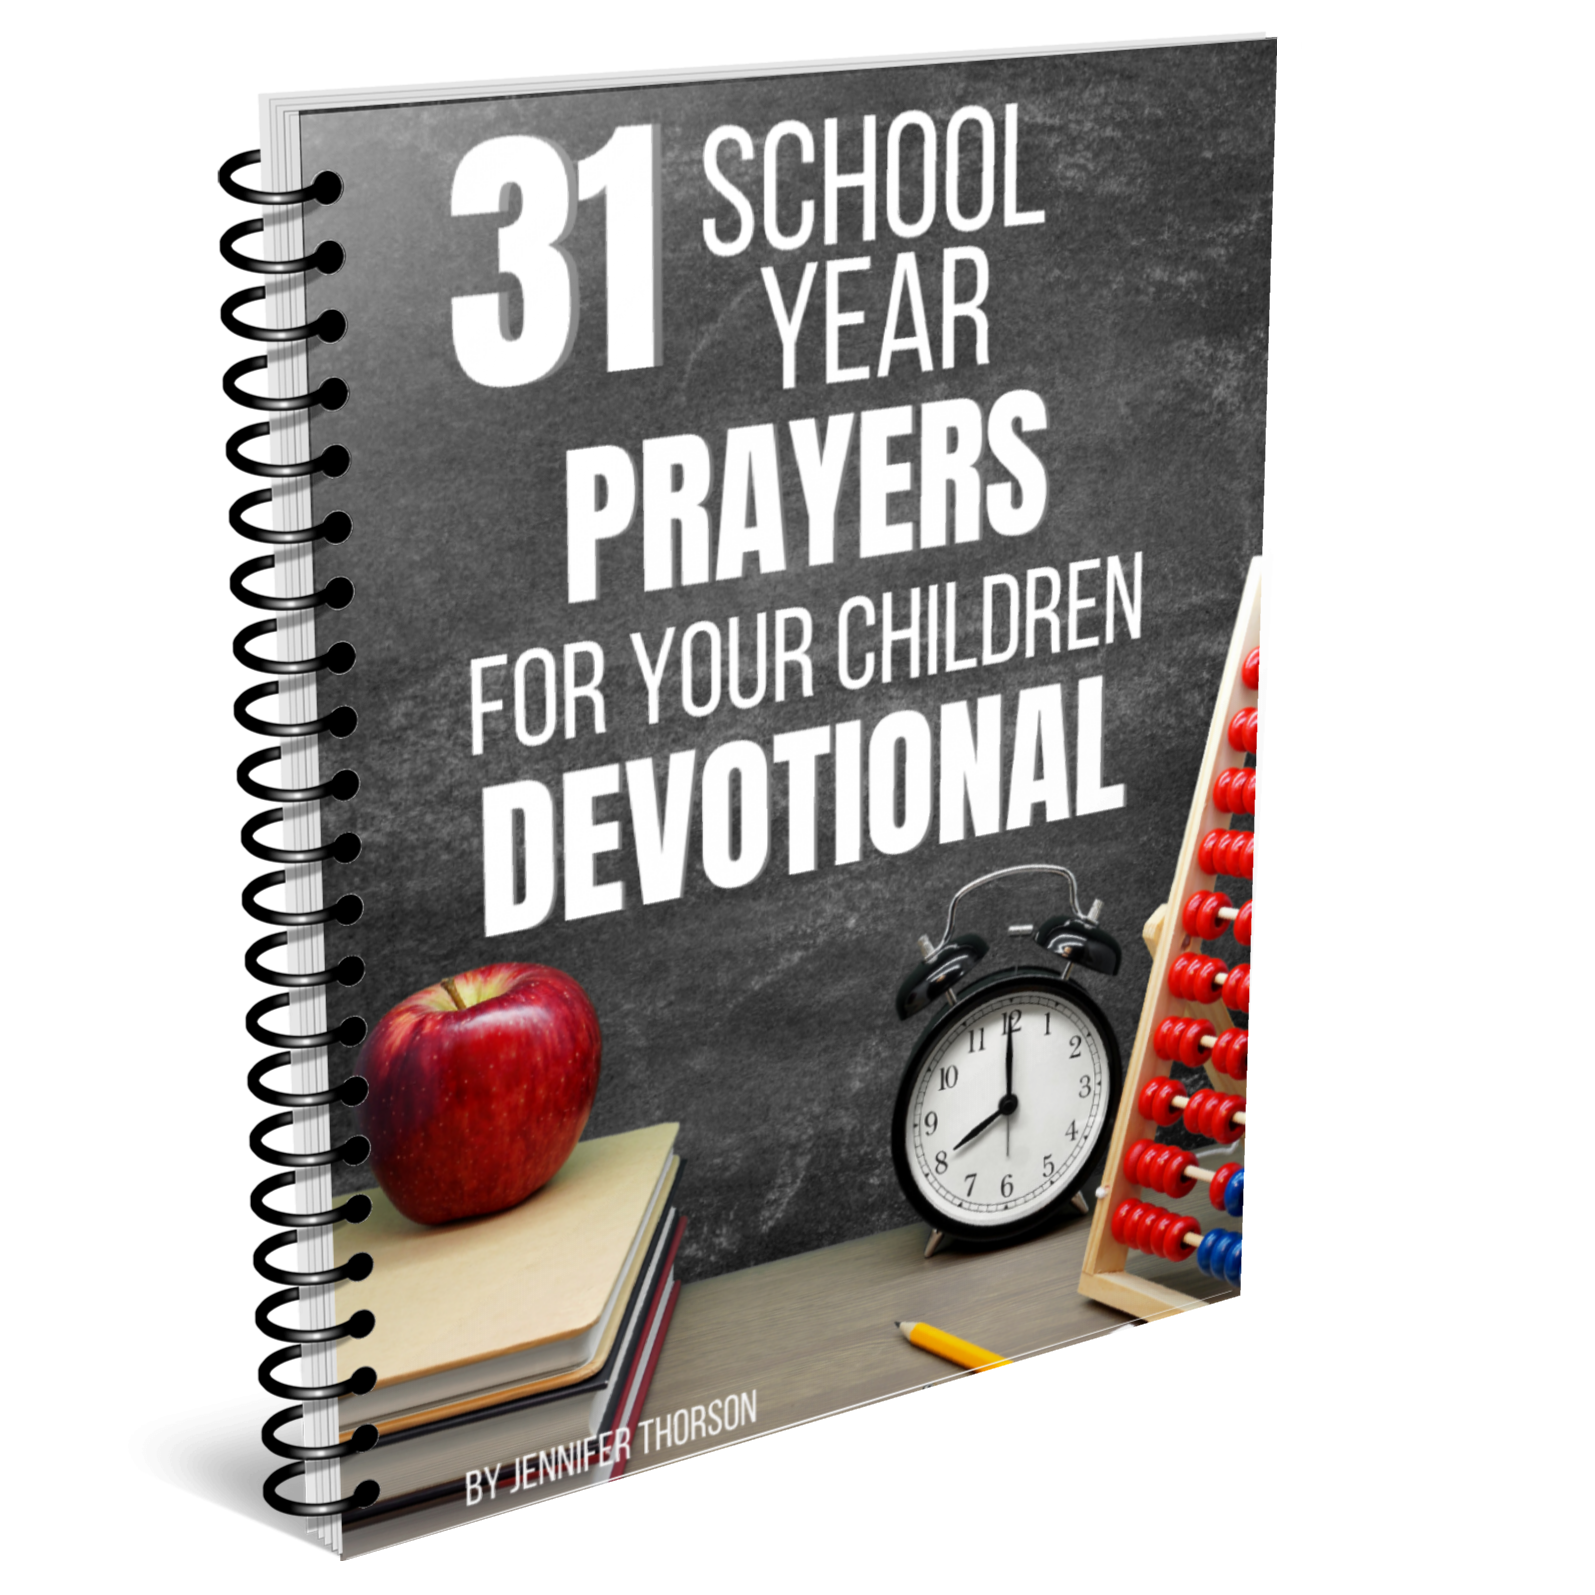 31 school year prayers for your children devotional